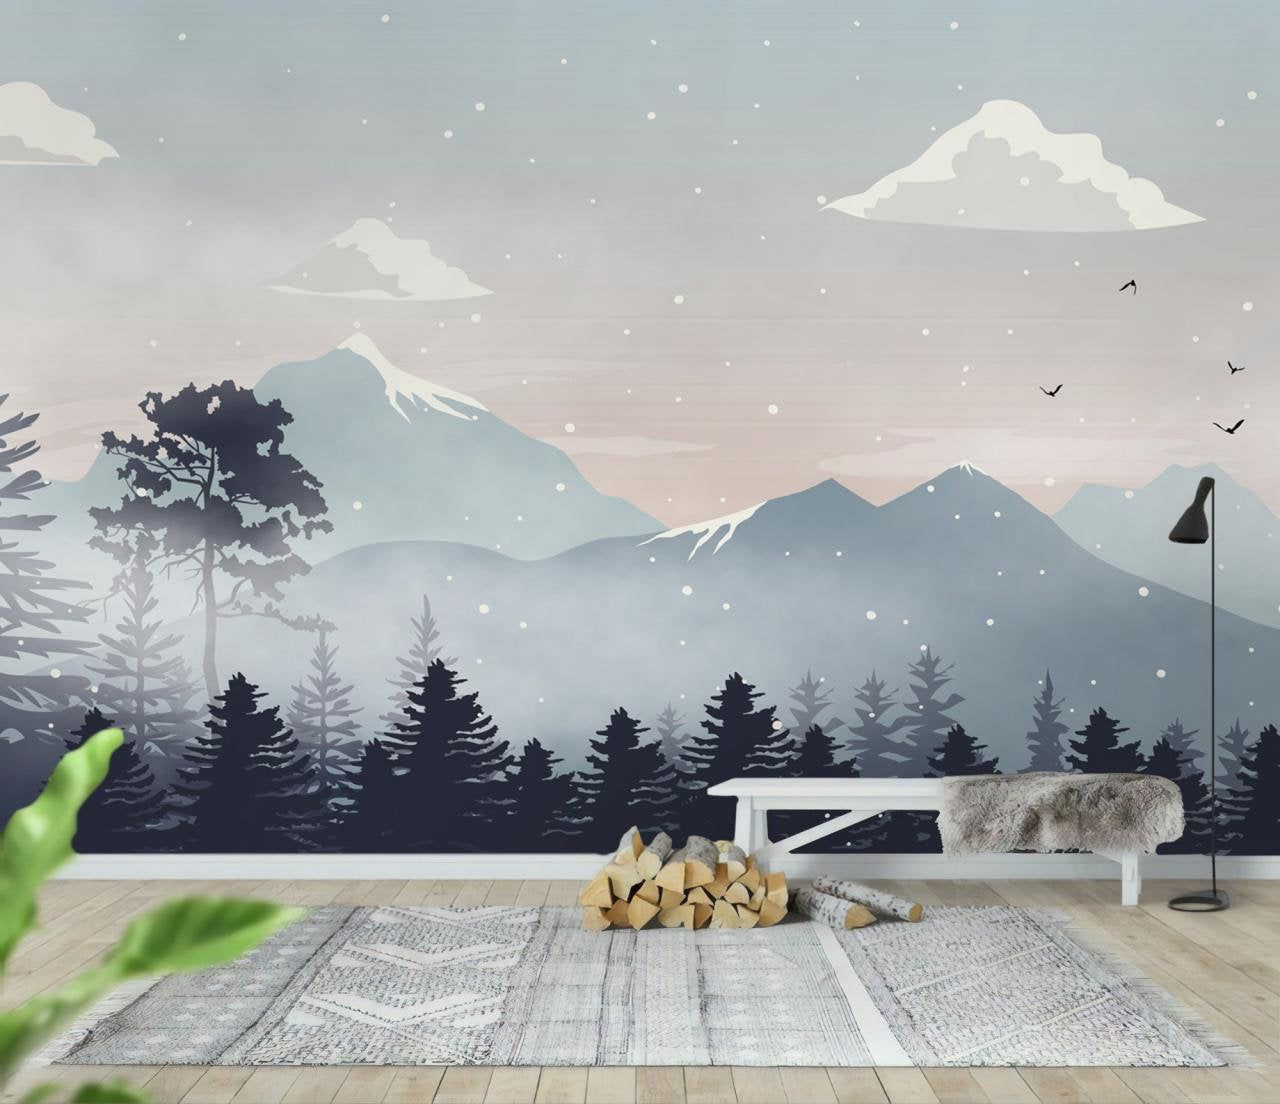 Kids Wallpaper Peel And Stick Self Adhesive Mountain Wall Mural Removable Snowy Mountainscape Wallpaper Natural Wall Mural Childroom Nursery In 2021 Kids Wall Murals Murals For Kids Kids Wallpaper